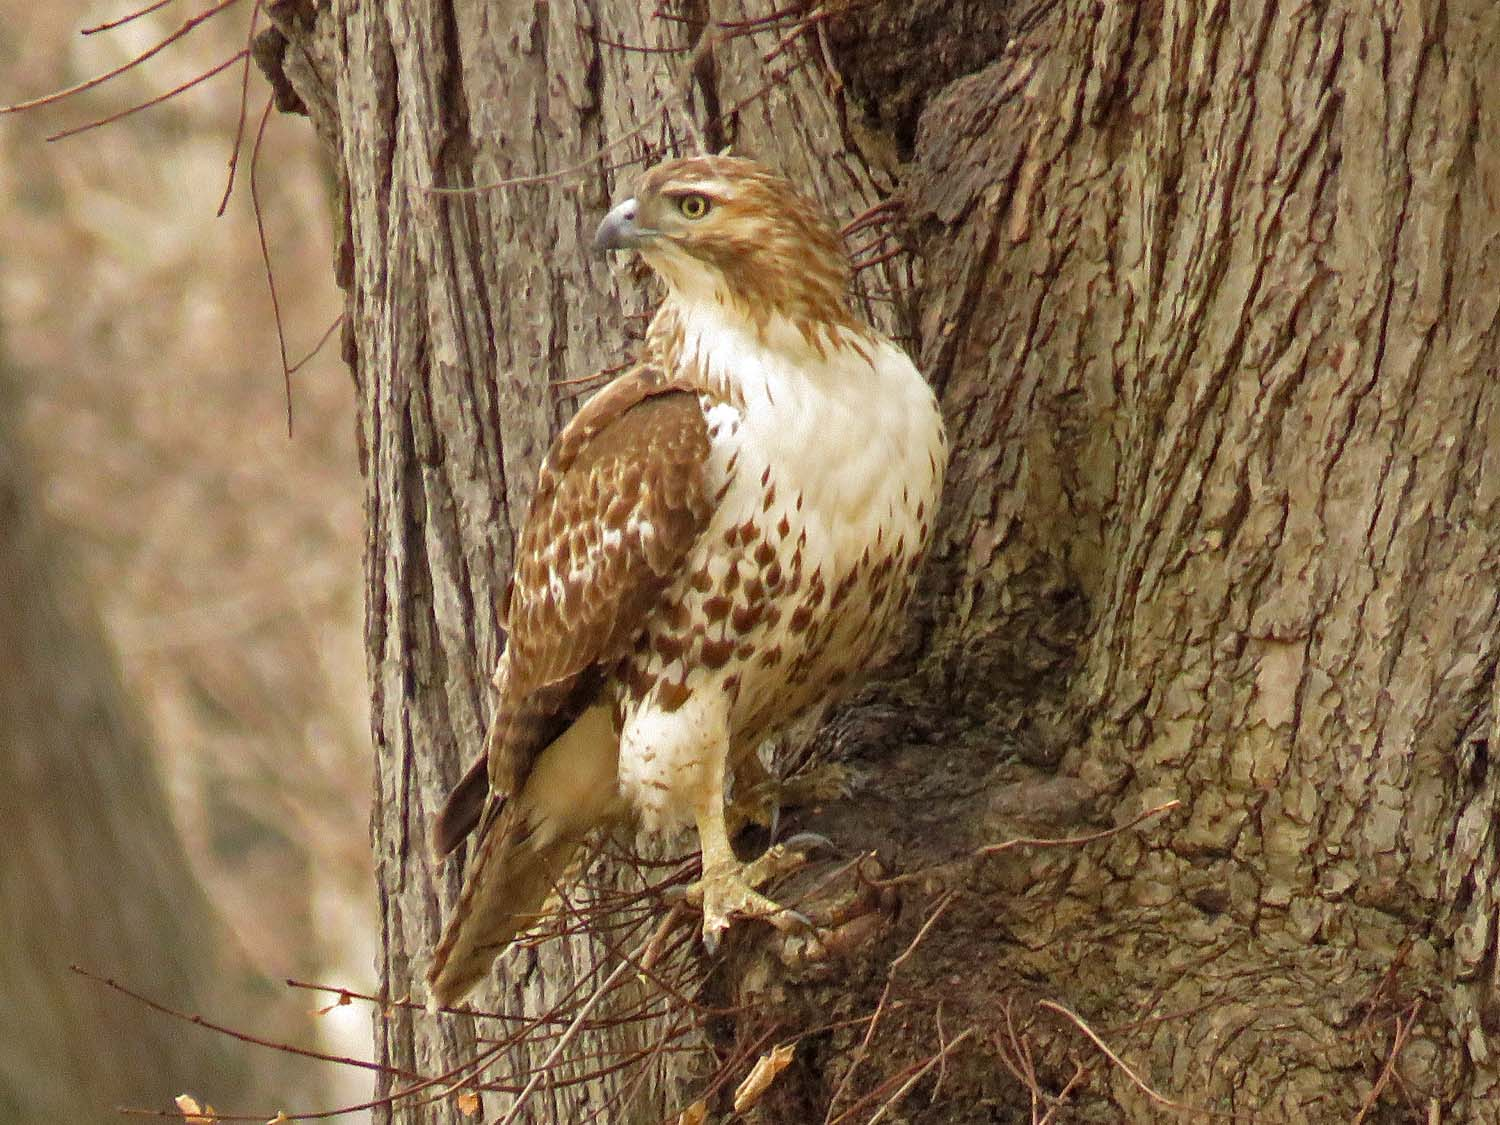 Juvenile red-tailed hawk, Cherry Hill, Central Park, January 20